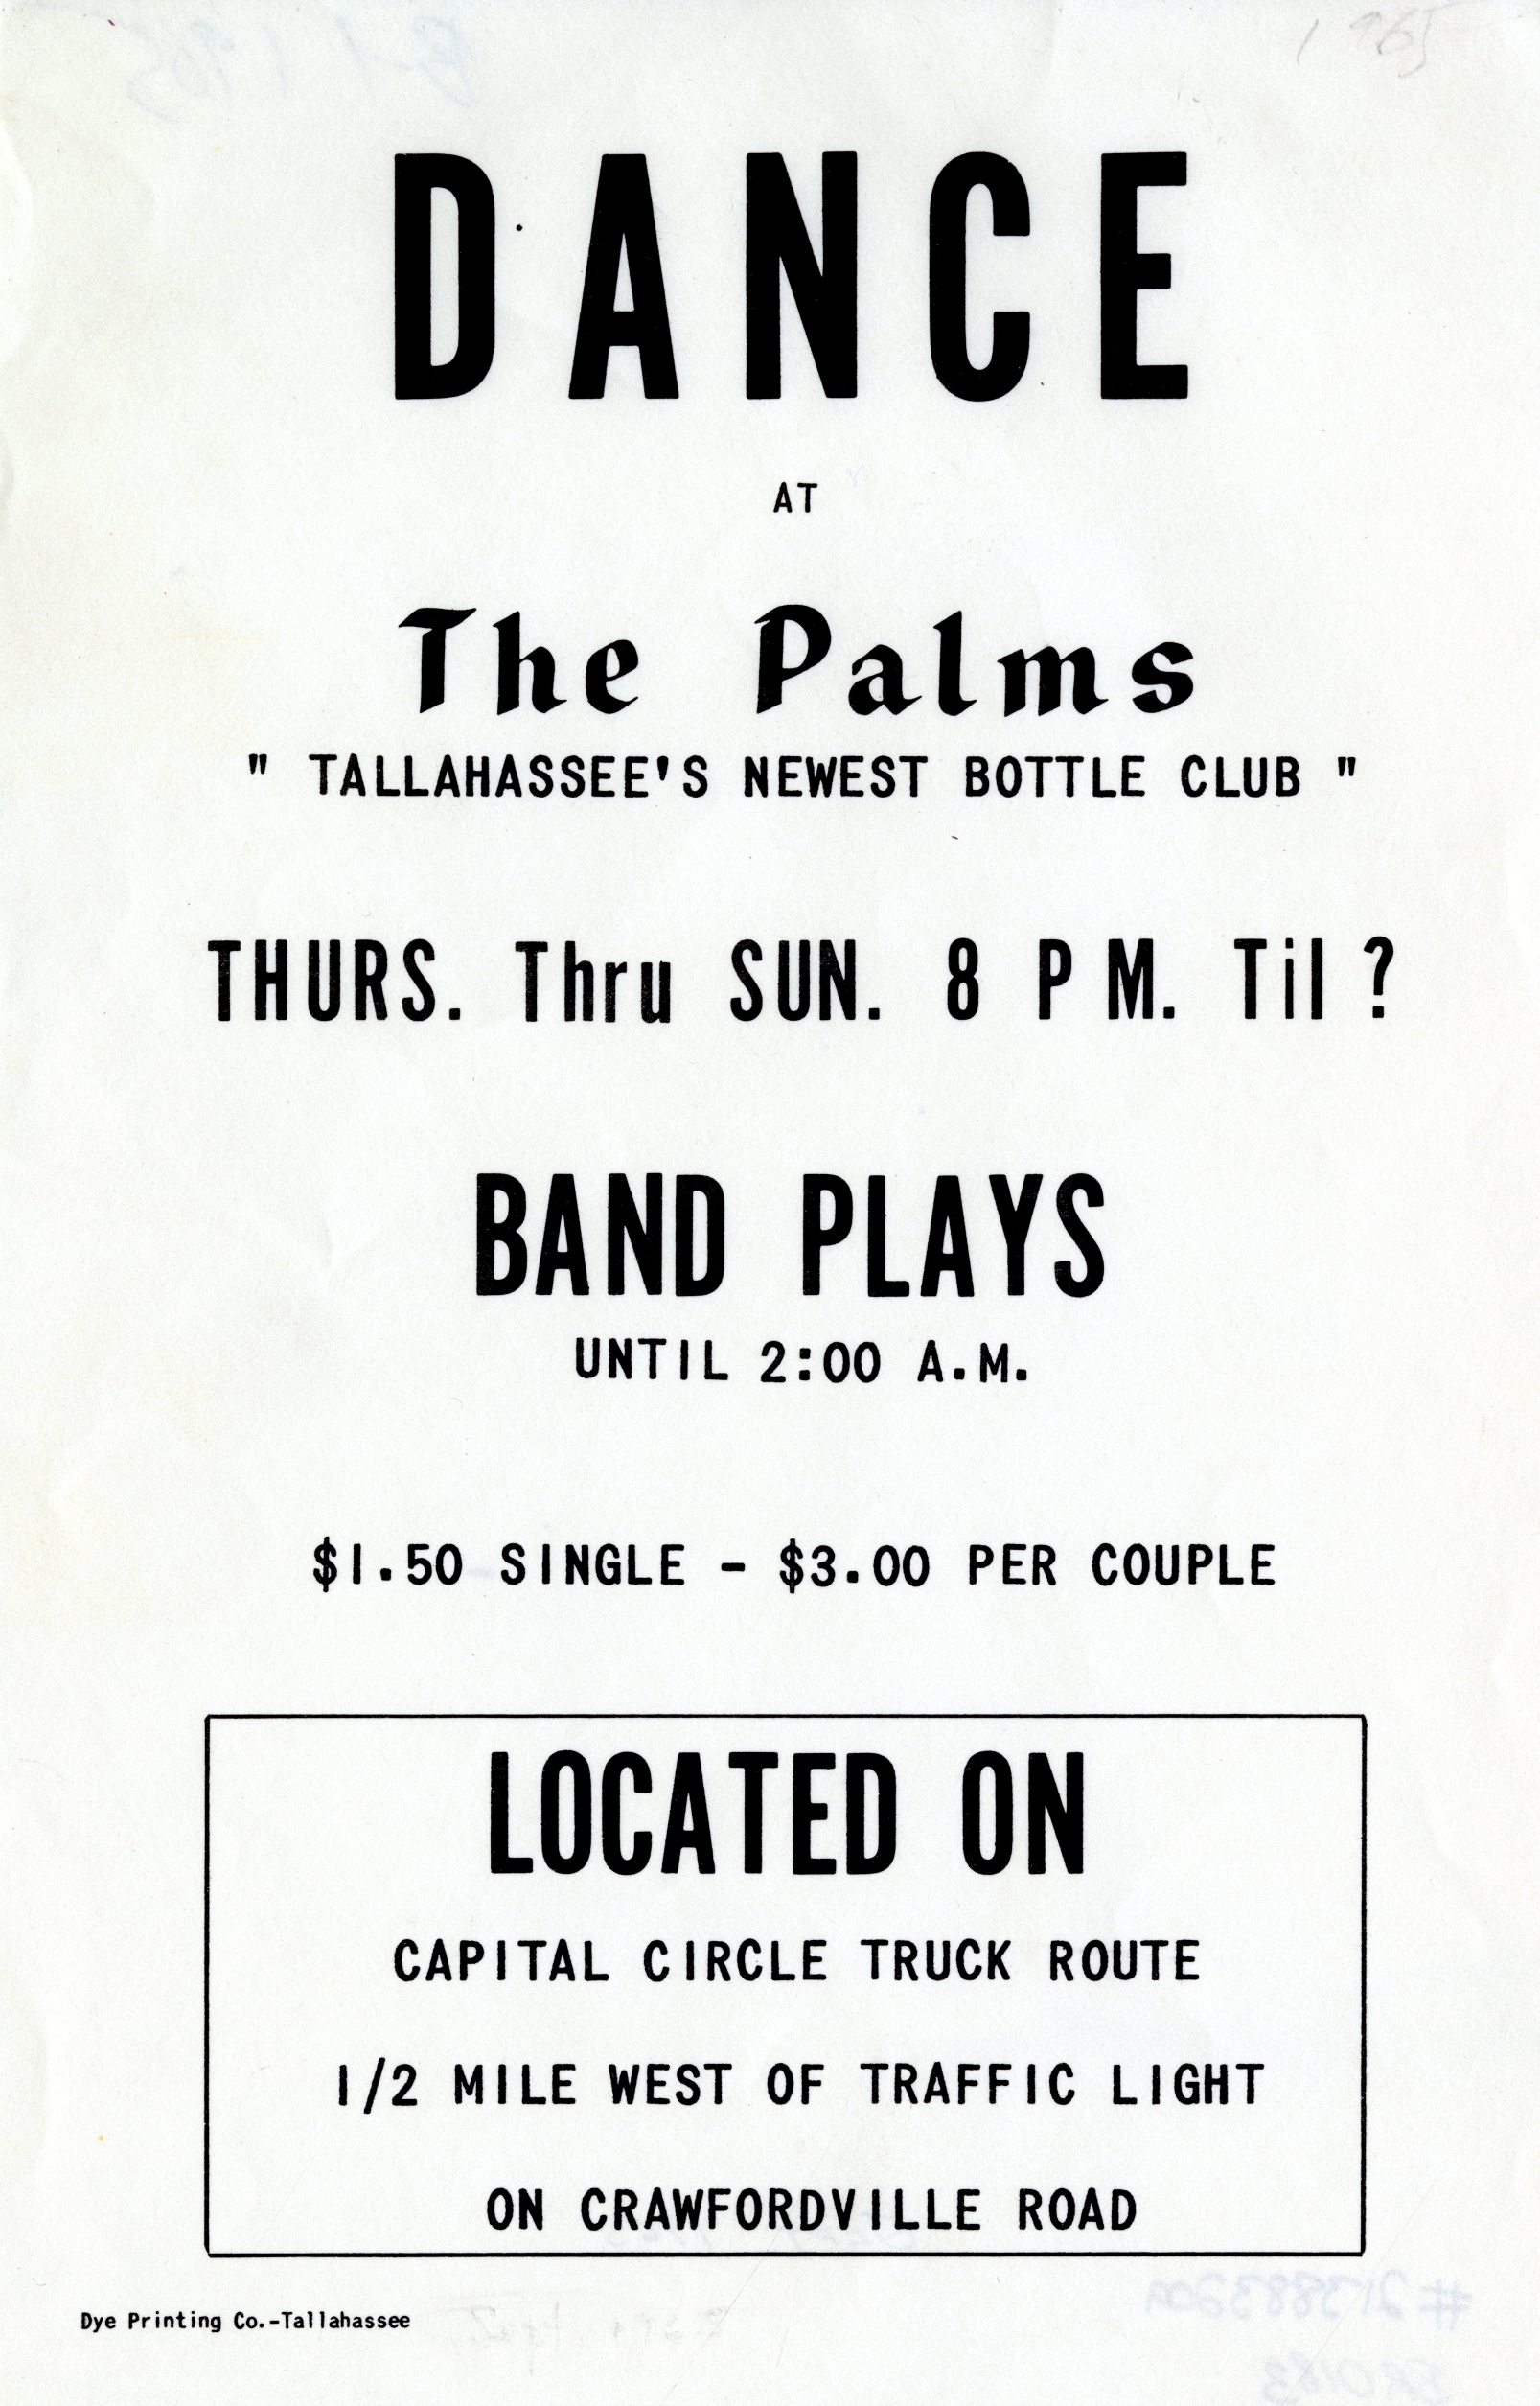 Dance at The Palms, Tallahassee&#039;s newest bottle club.